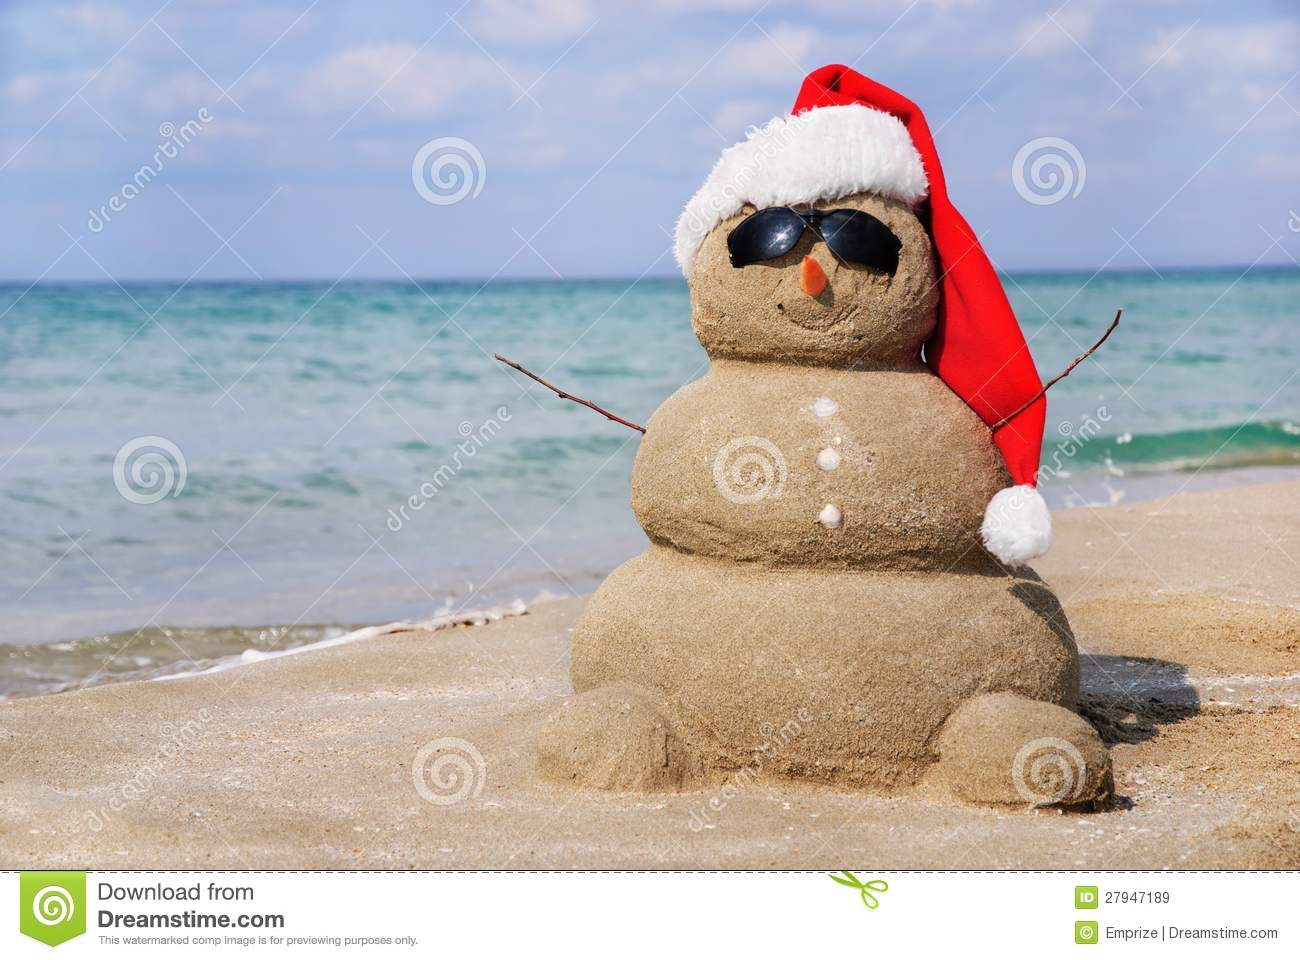 Snowman made out of sand